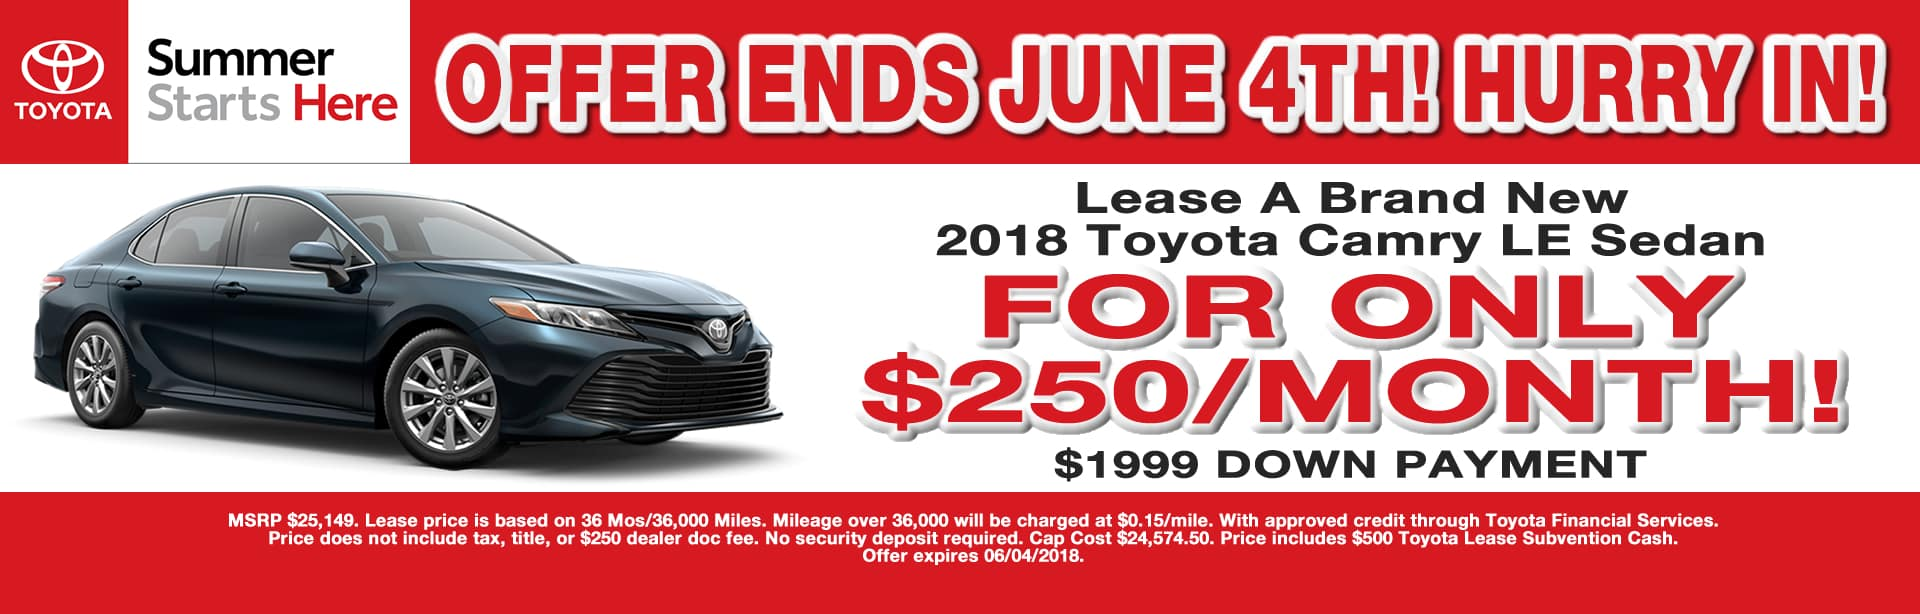 CAMRY LEASE SPECIAL CAIN TOYOTA NORTH CANTON OHIO MAY 2018